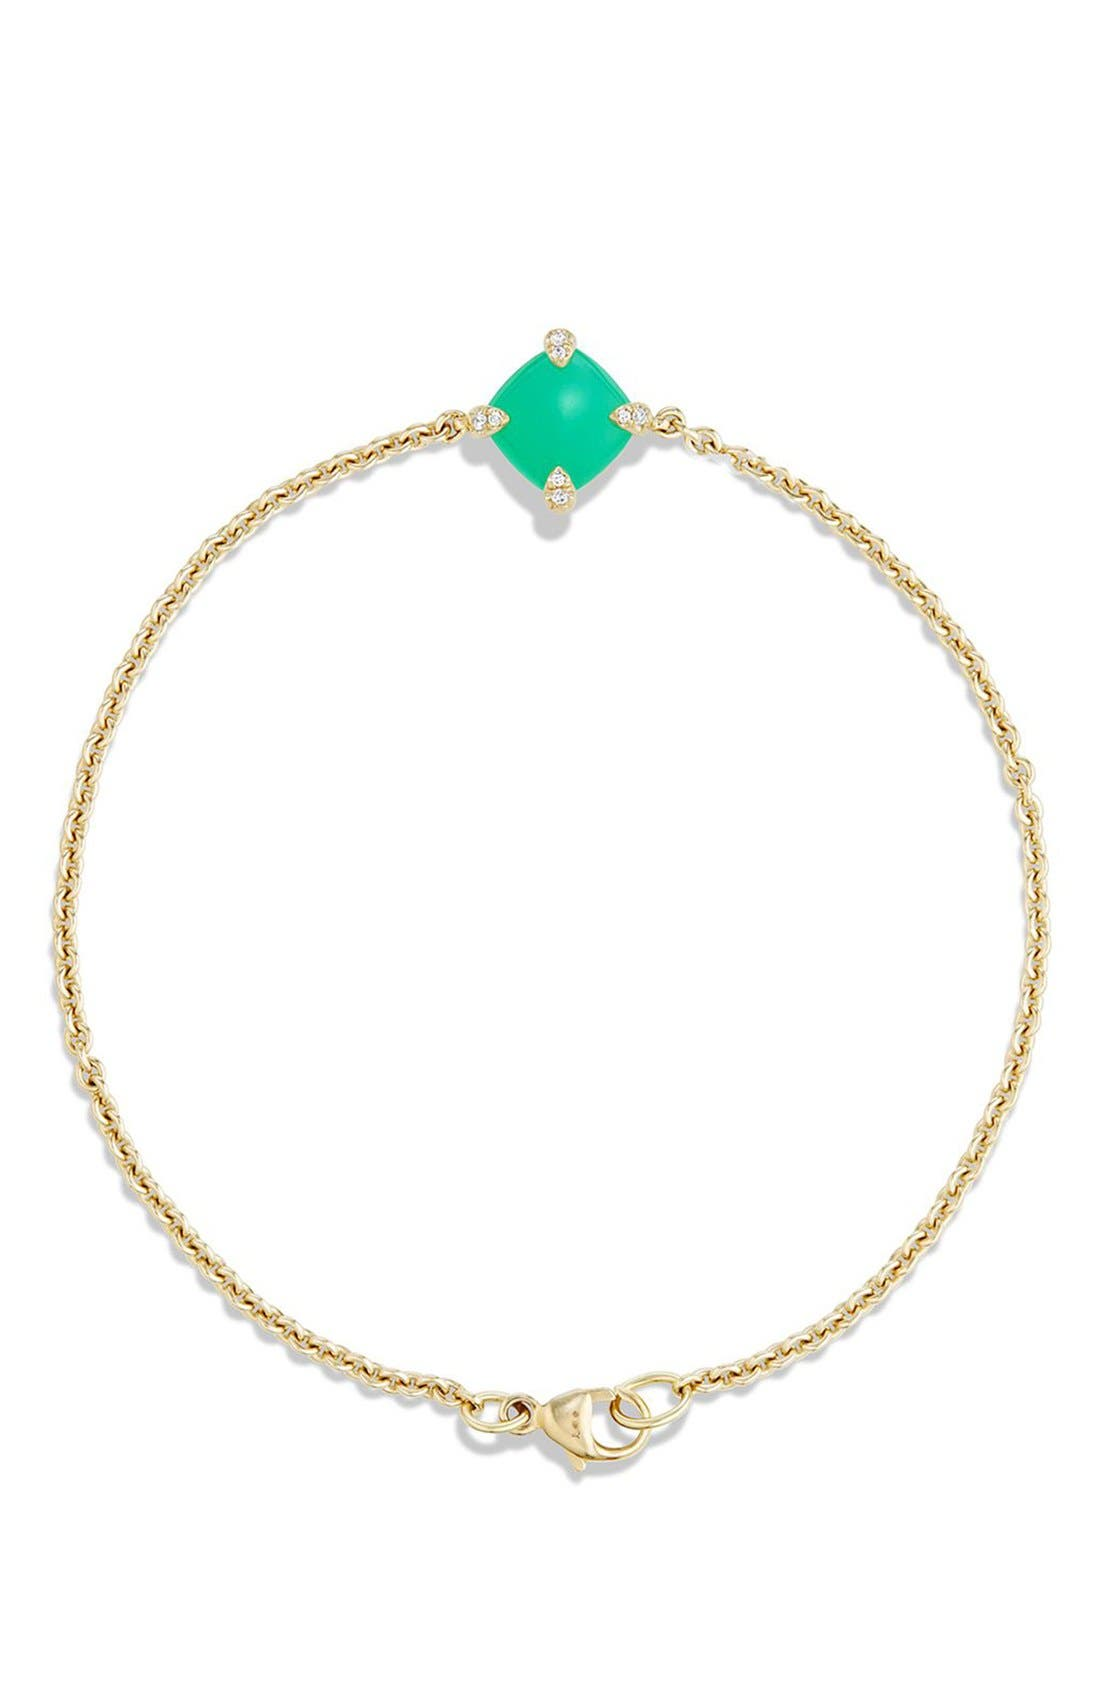 'Châtelaine' Bracelet with Diamonds in 18K Gold,                             Alternate thumbnail 3, color,                             CHRYSOPRASE